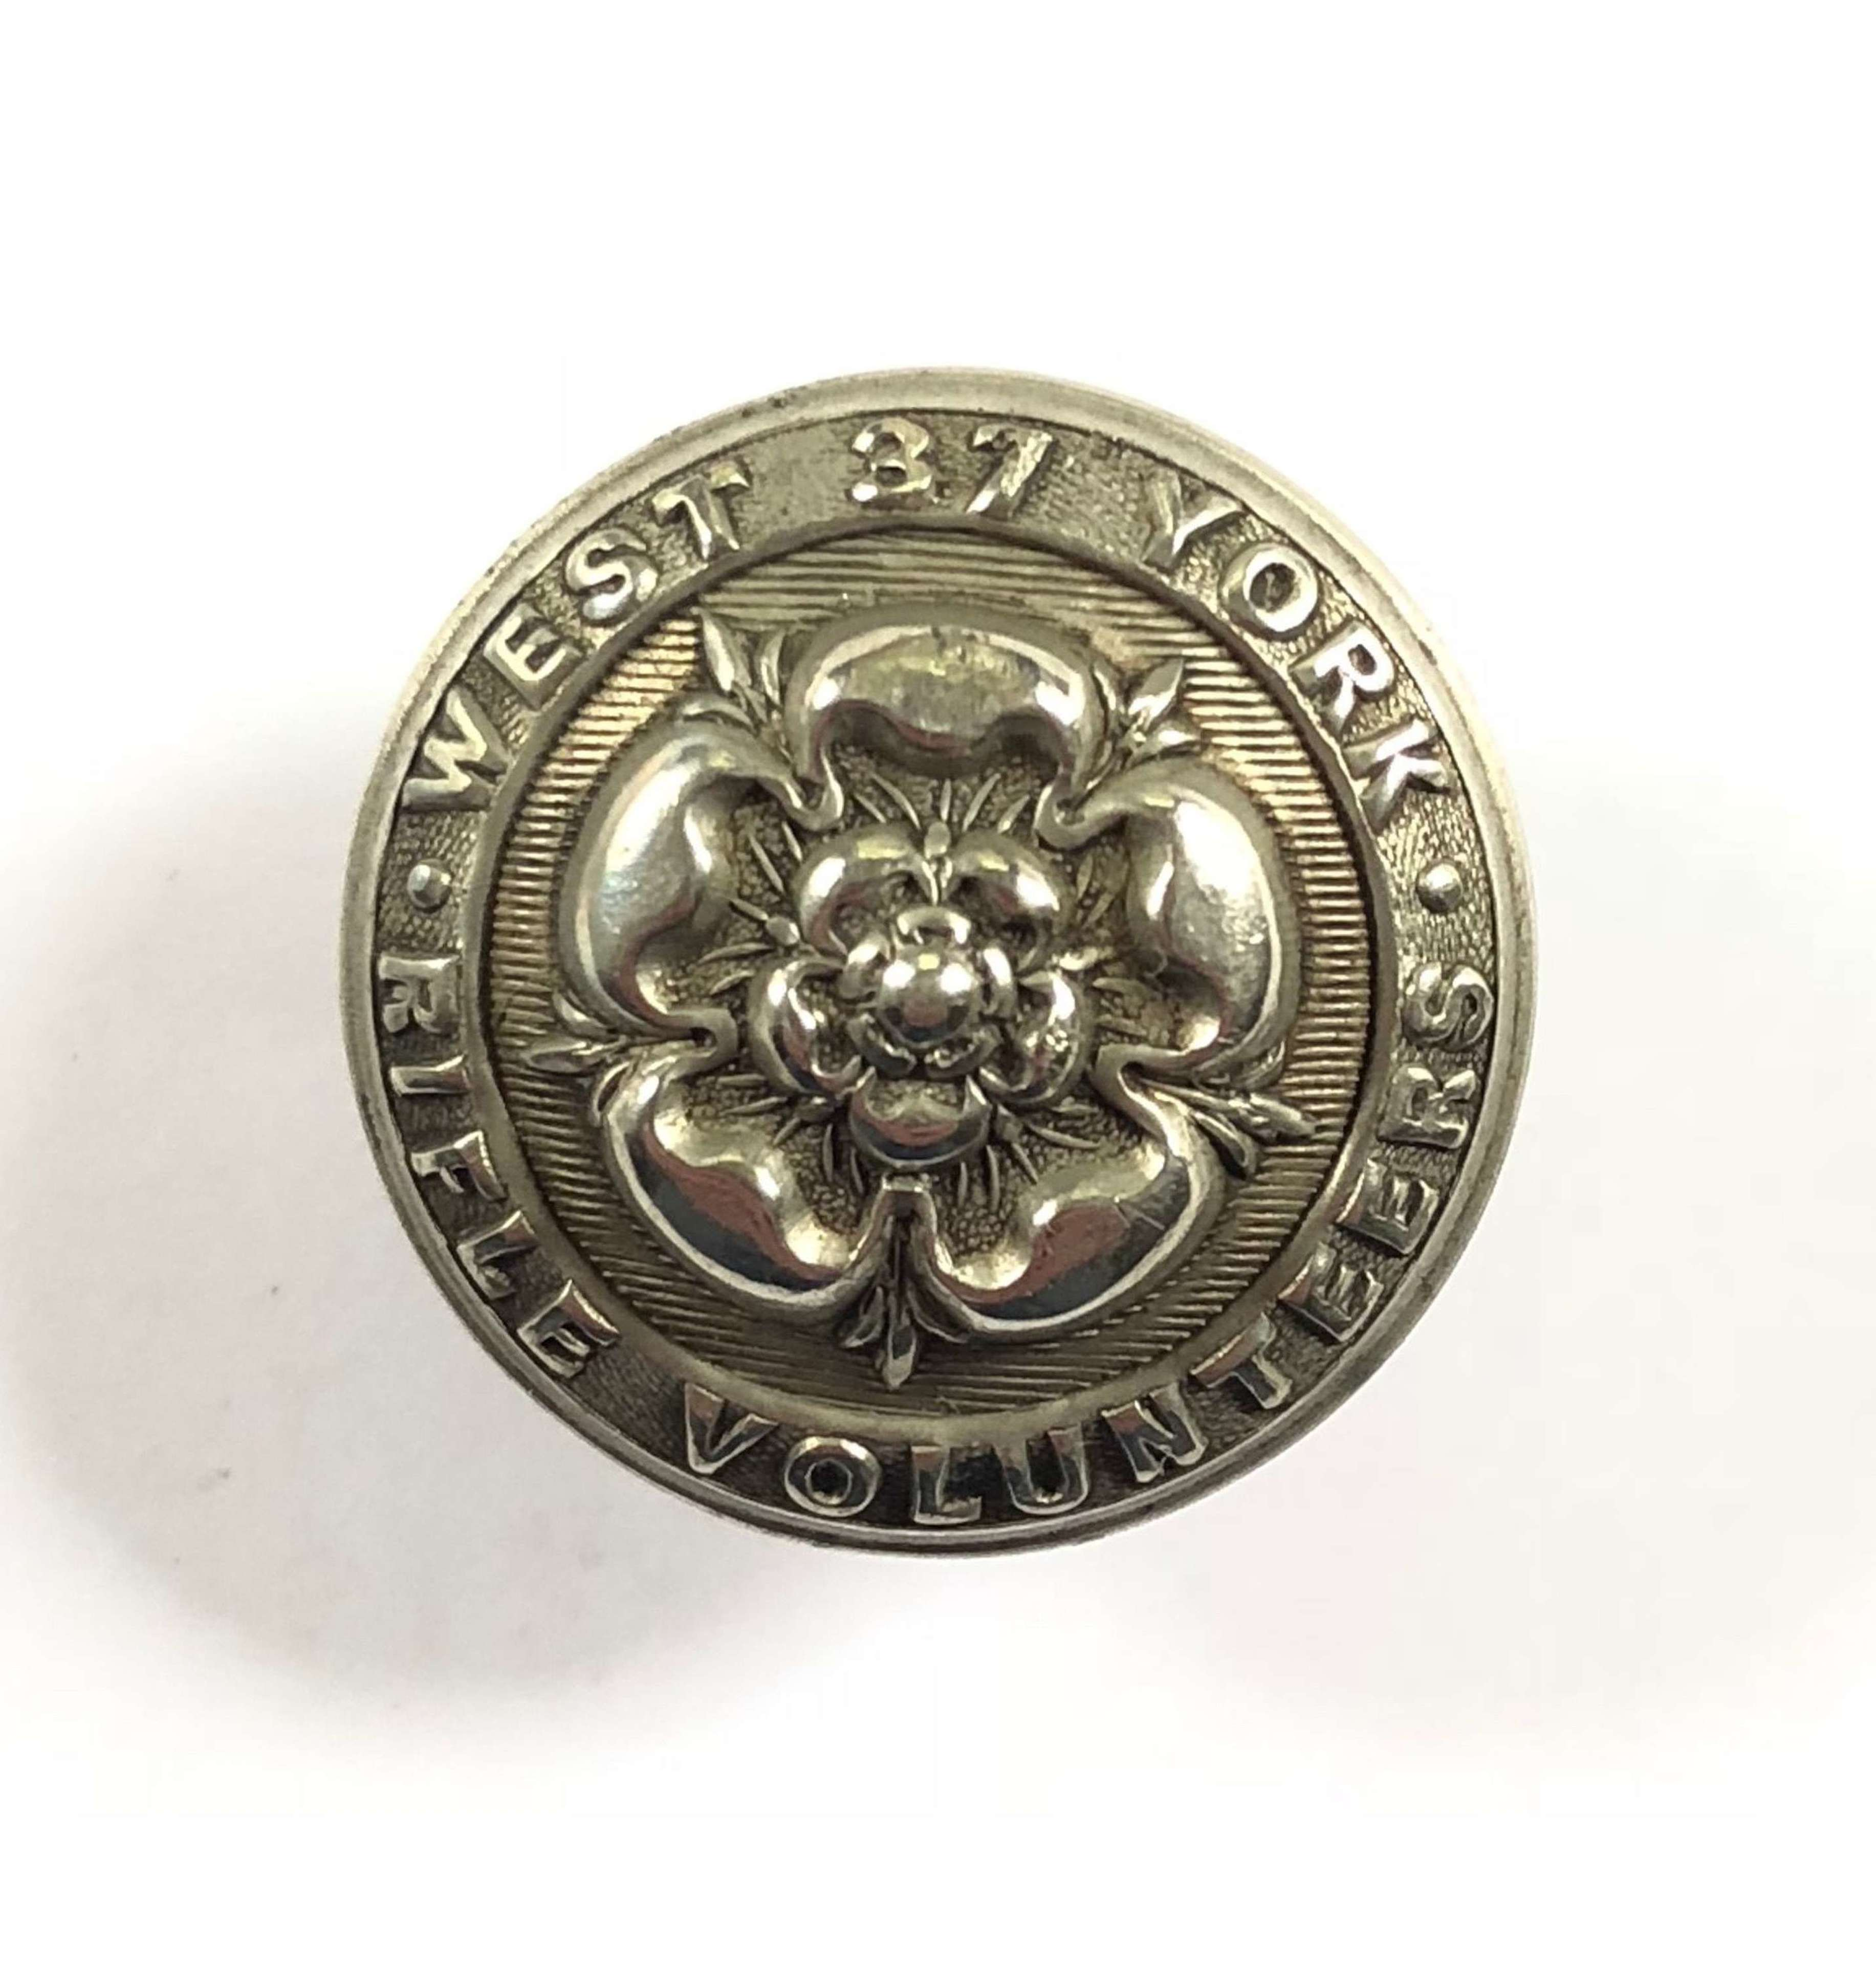 37th (Barnsley) Yorkshire, West Riding, Rifle Volunteer Corps Button